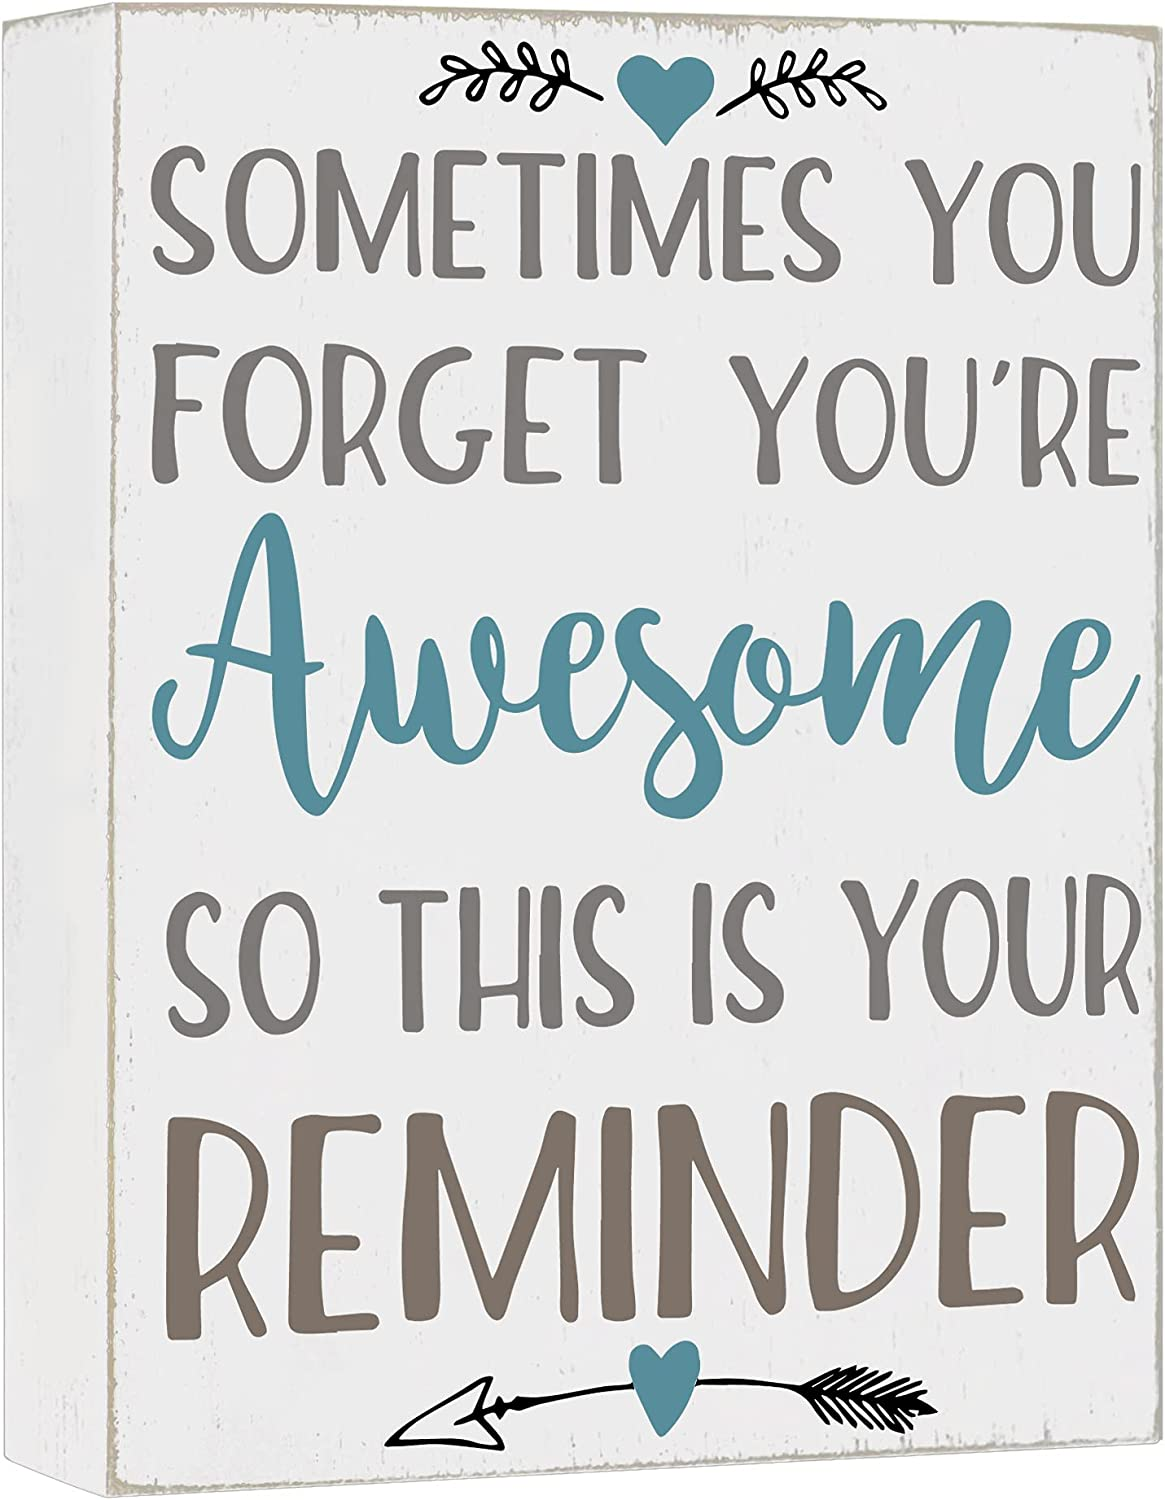 Cocomong Modern Farmhouse Decorations for Living Room, Sometimes You Forget You are Awesome, Inspirational Gifts, Housewarming Gifts for Women, Inspirational Wall Art Shelf Decor, House Decor Sign 6x8